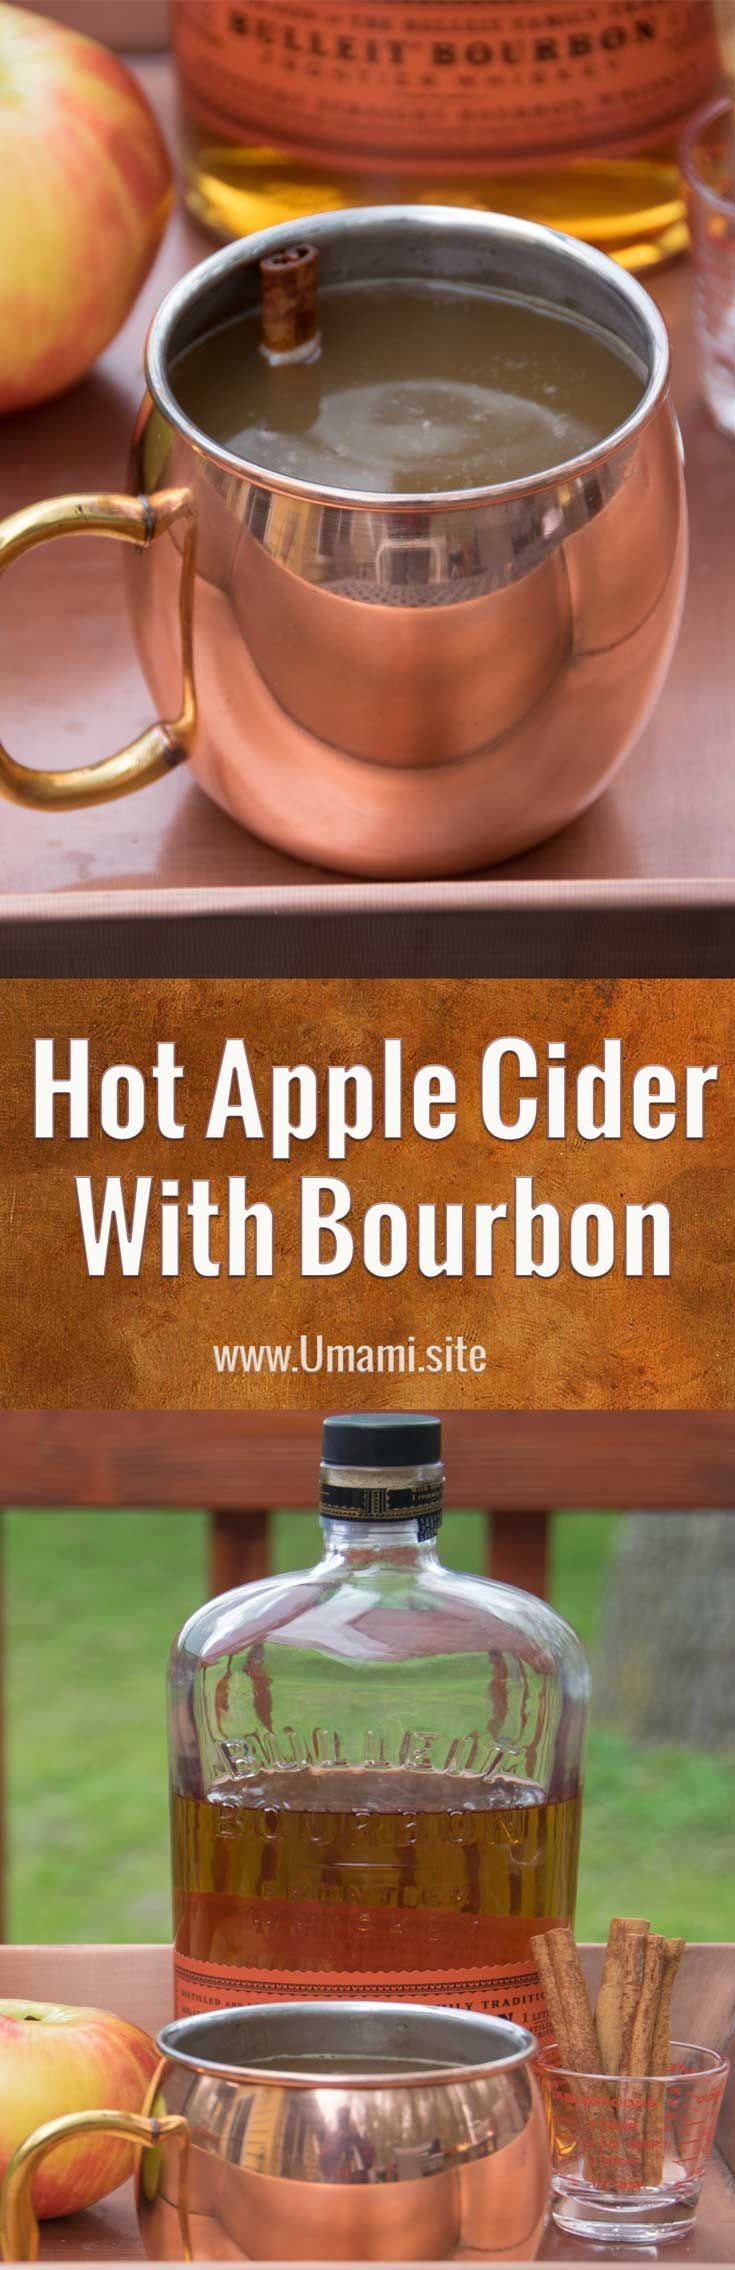 This Hot Apple Cider with Bourbon recipes is one of our favorite pick me ups for cool fall days.  All it takes to make this recipe is some fresh pressed apple cider, a touch of cinnamon, and a good shot of bourbon. #recipes #drinks #cocktails